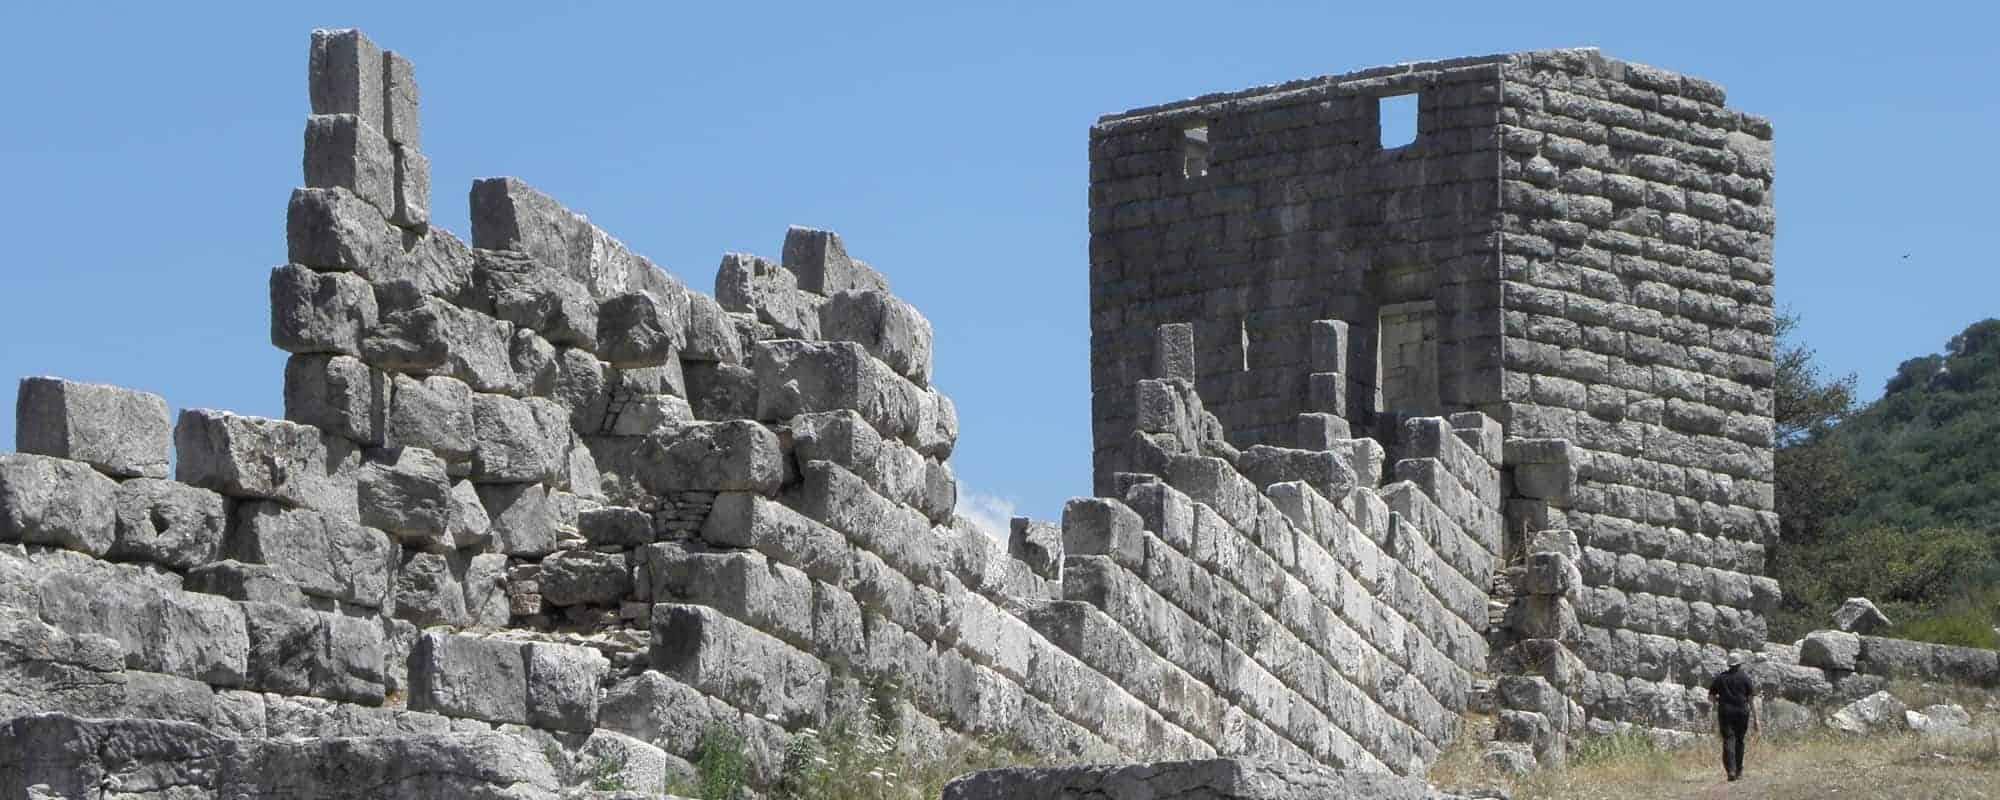 The walls and towers of Messene count among the best examples of Late Classical military architecture.